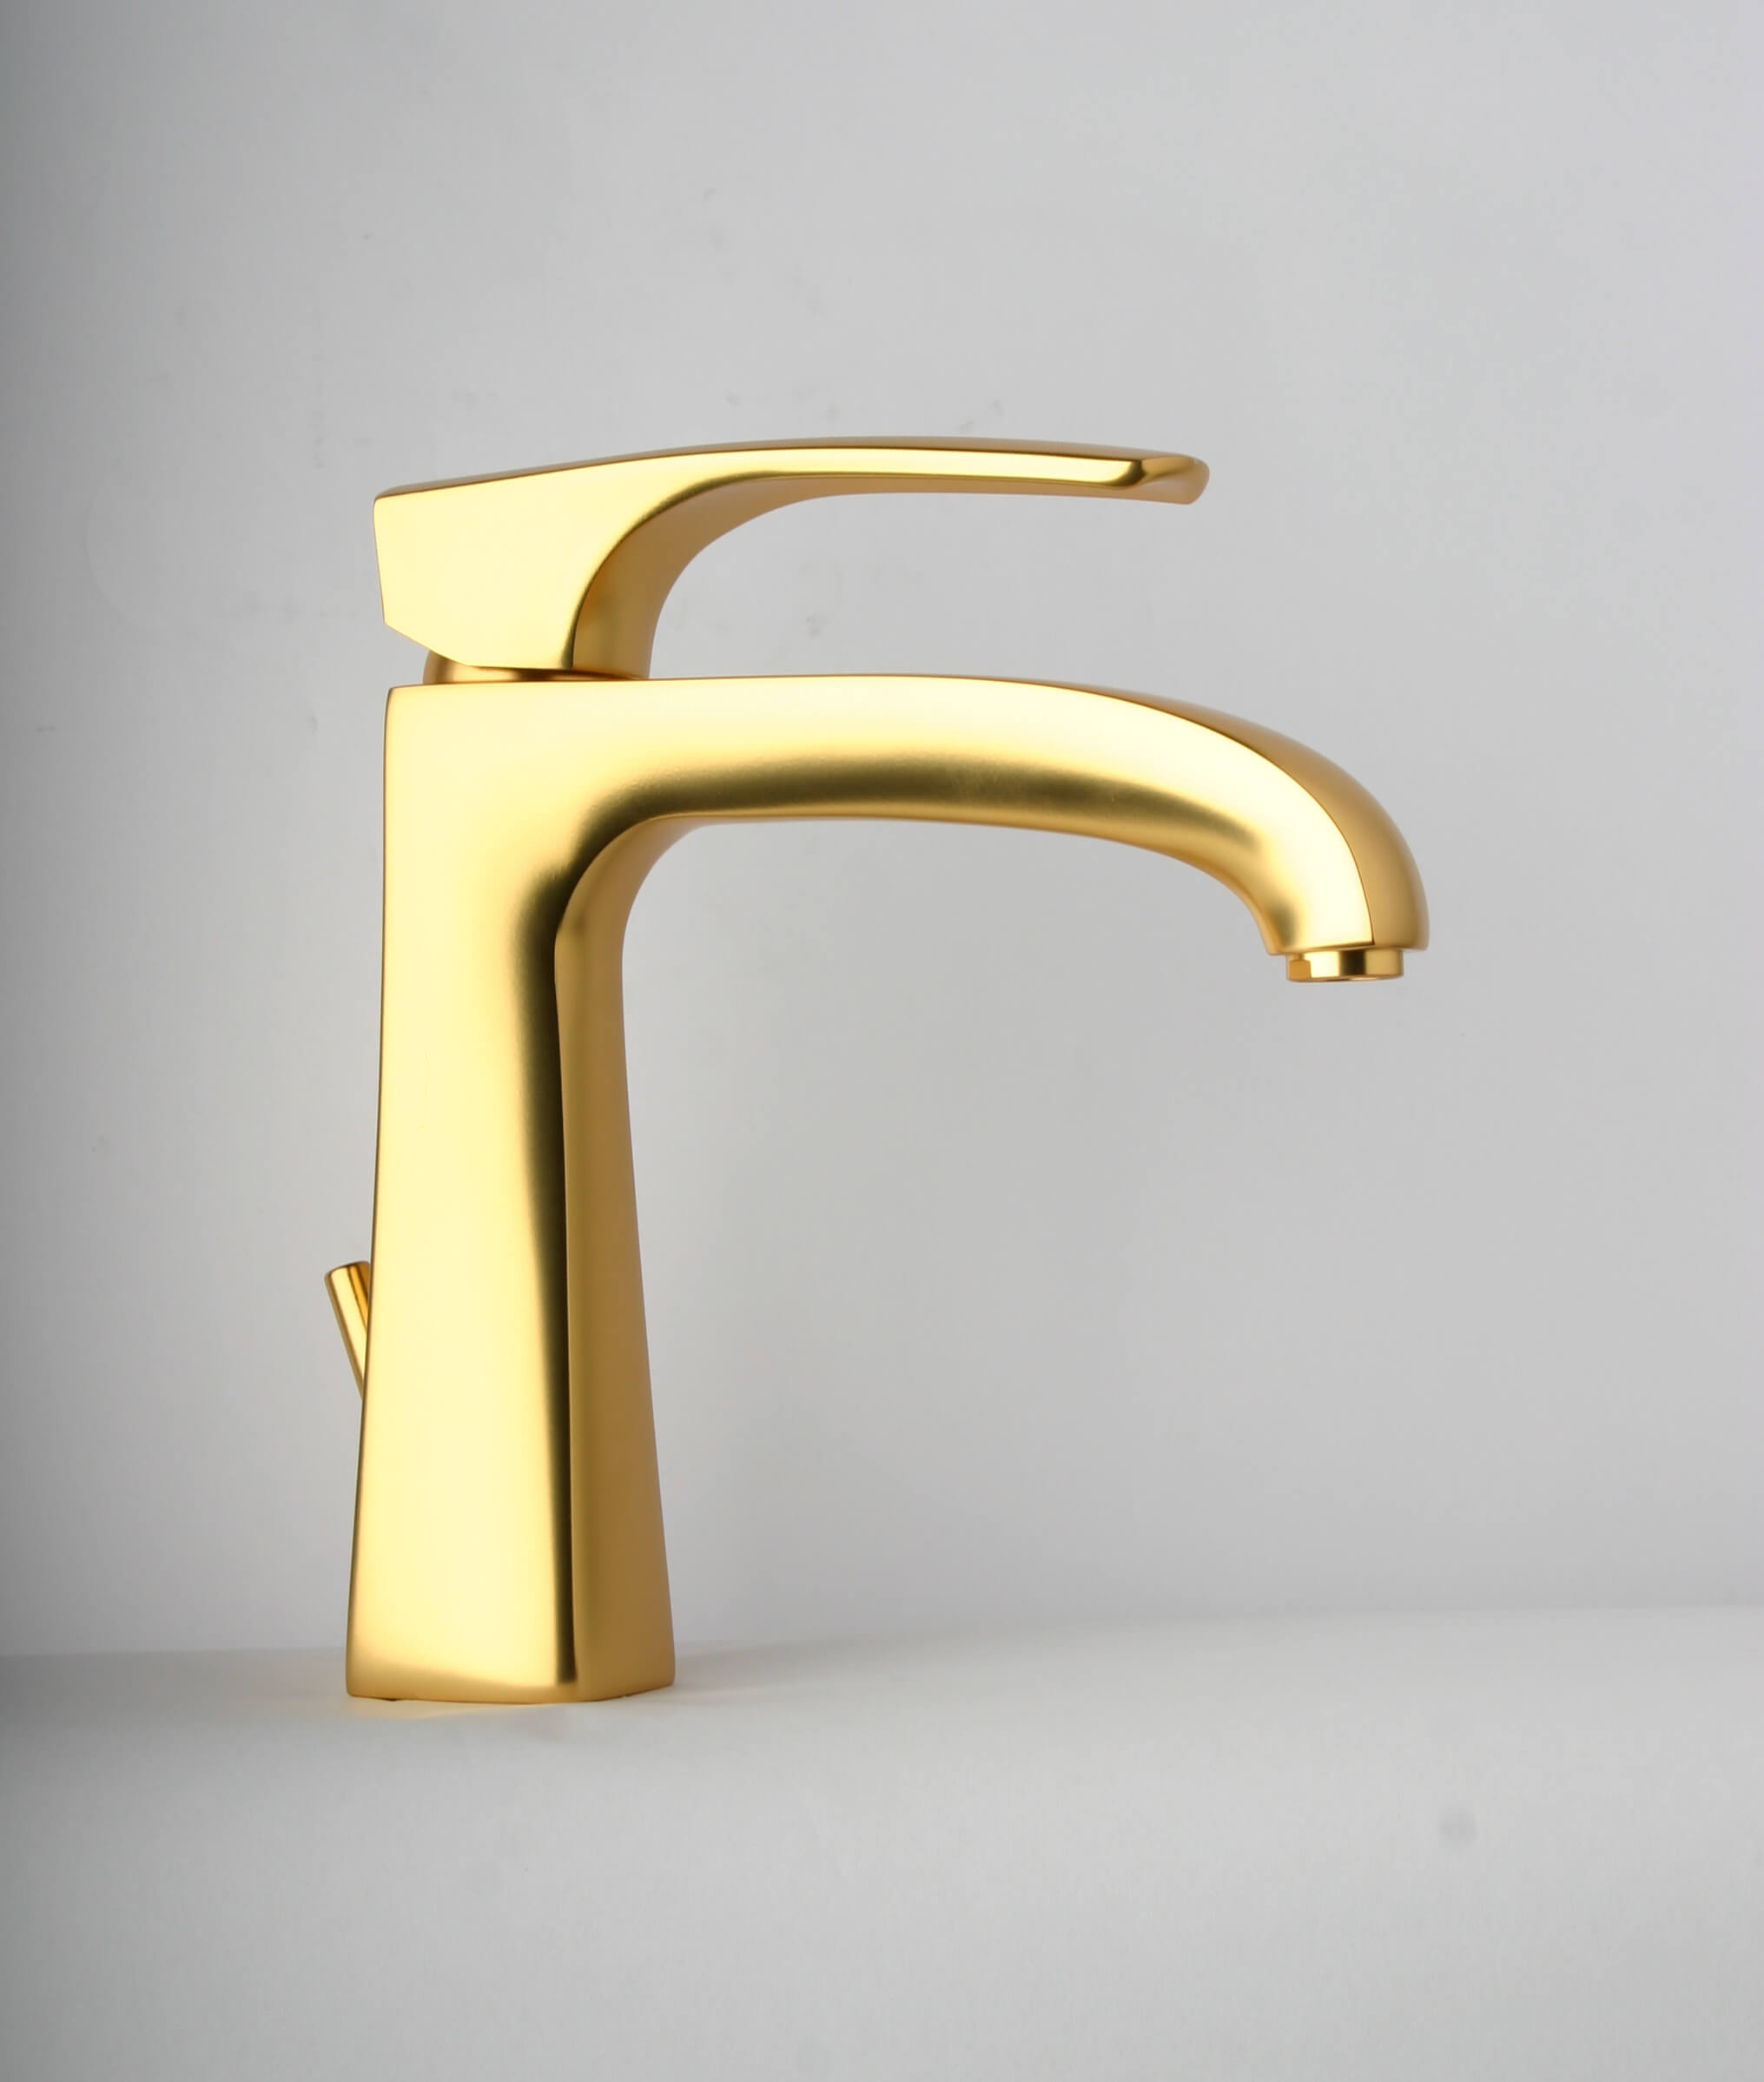 LaToscana by Paini Bathroom Faucets - Lady 89OK211 Single Control Lavatory Faucet - Satin Gold